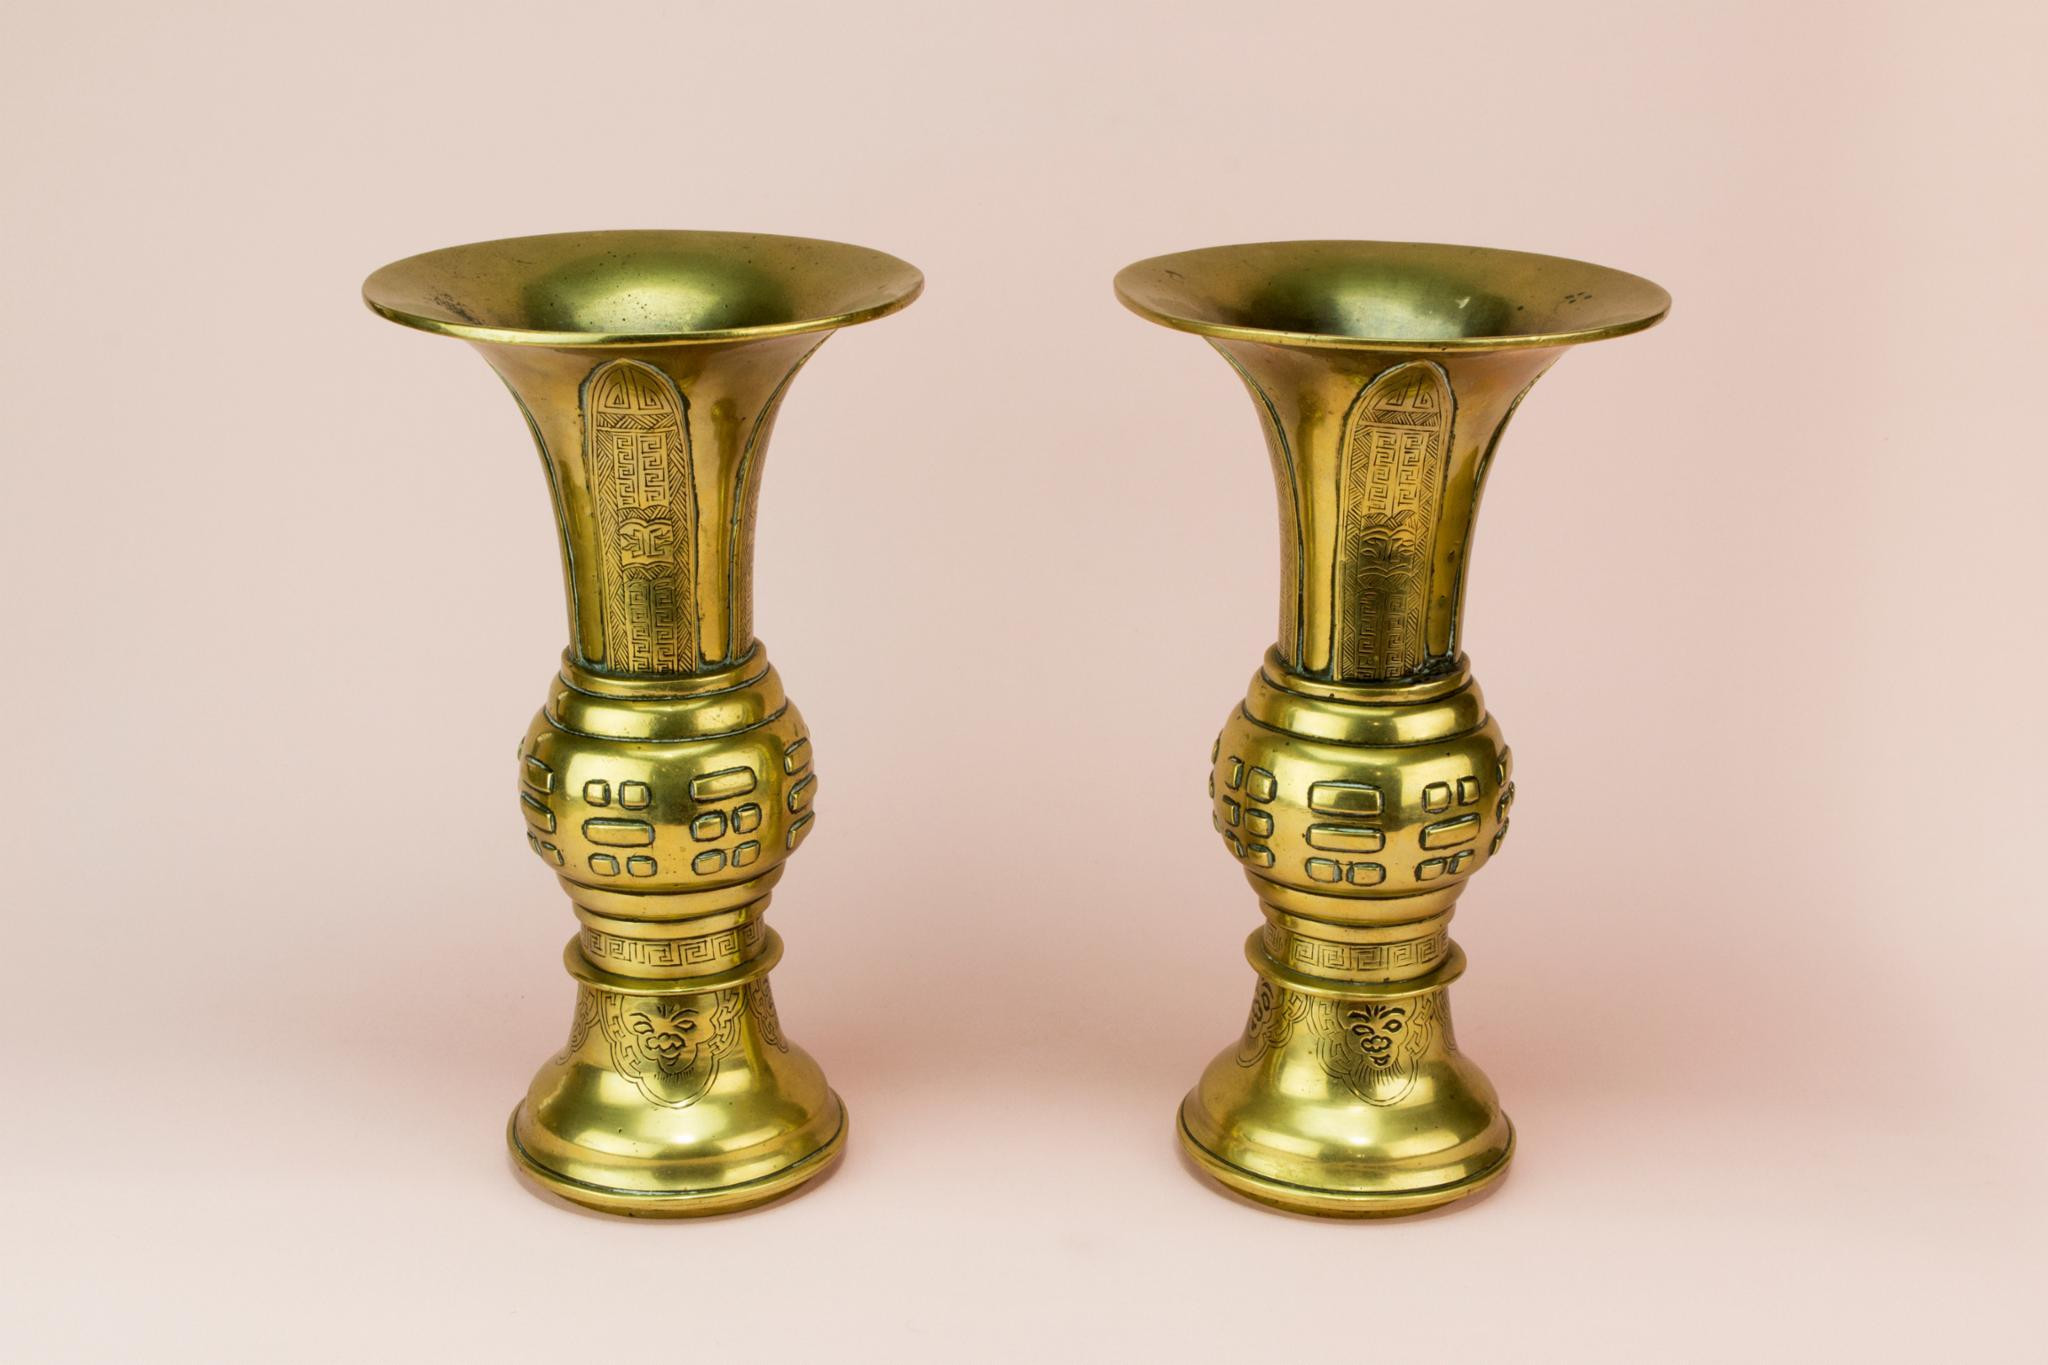 chinese vase with lid of 2 gu shaped brass vases chinese 19th century late 19th century inside 2 gu shaped brass vases chinese 19th century